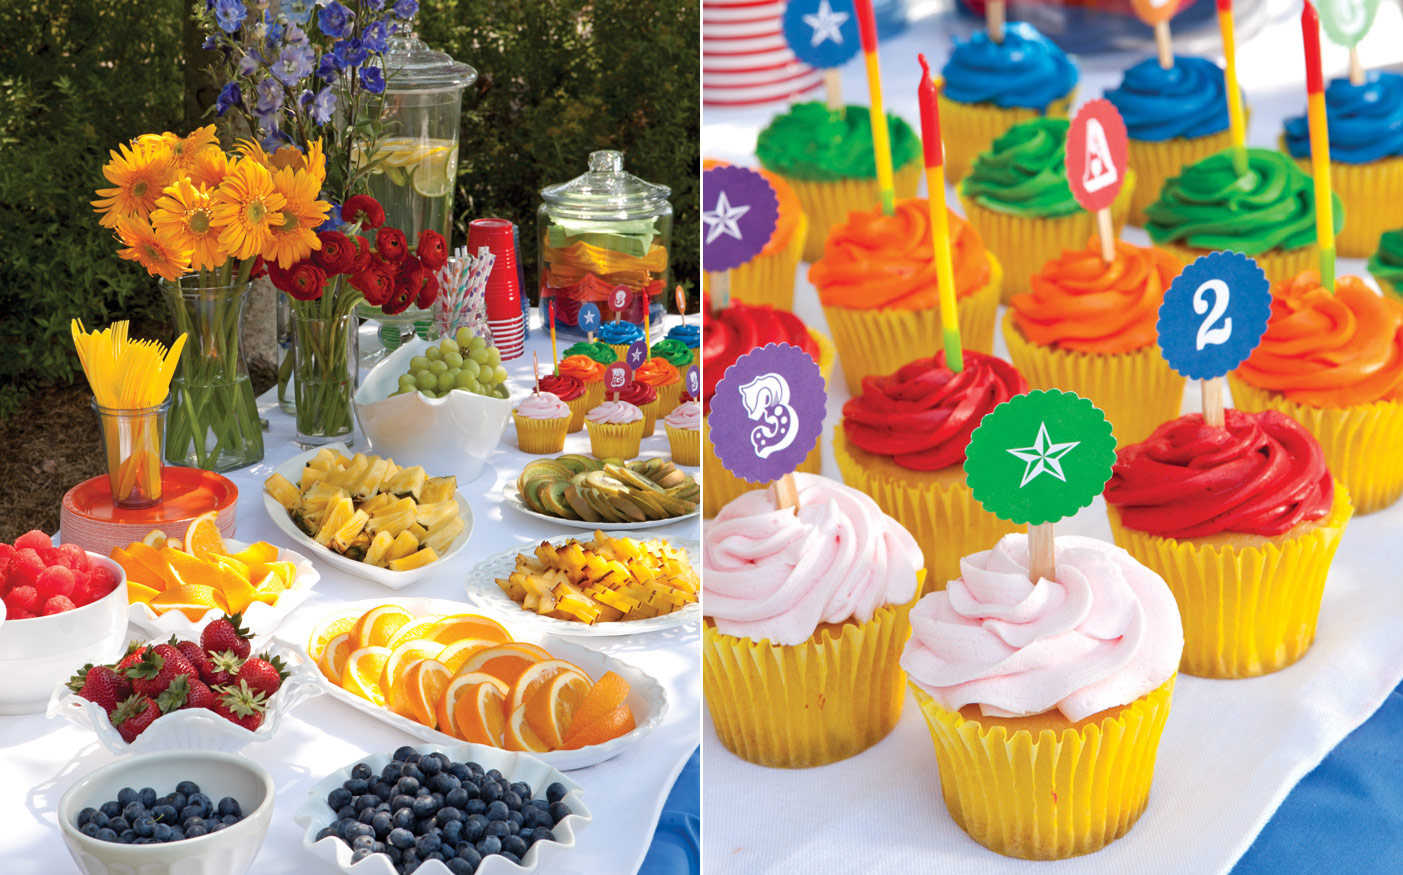 Food and cupcakes at a rainbow birthday party